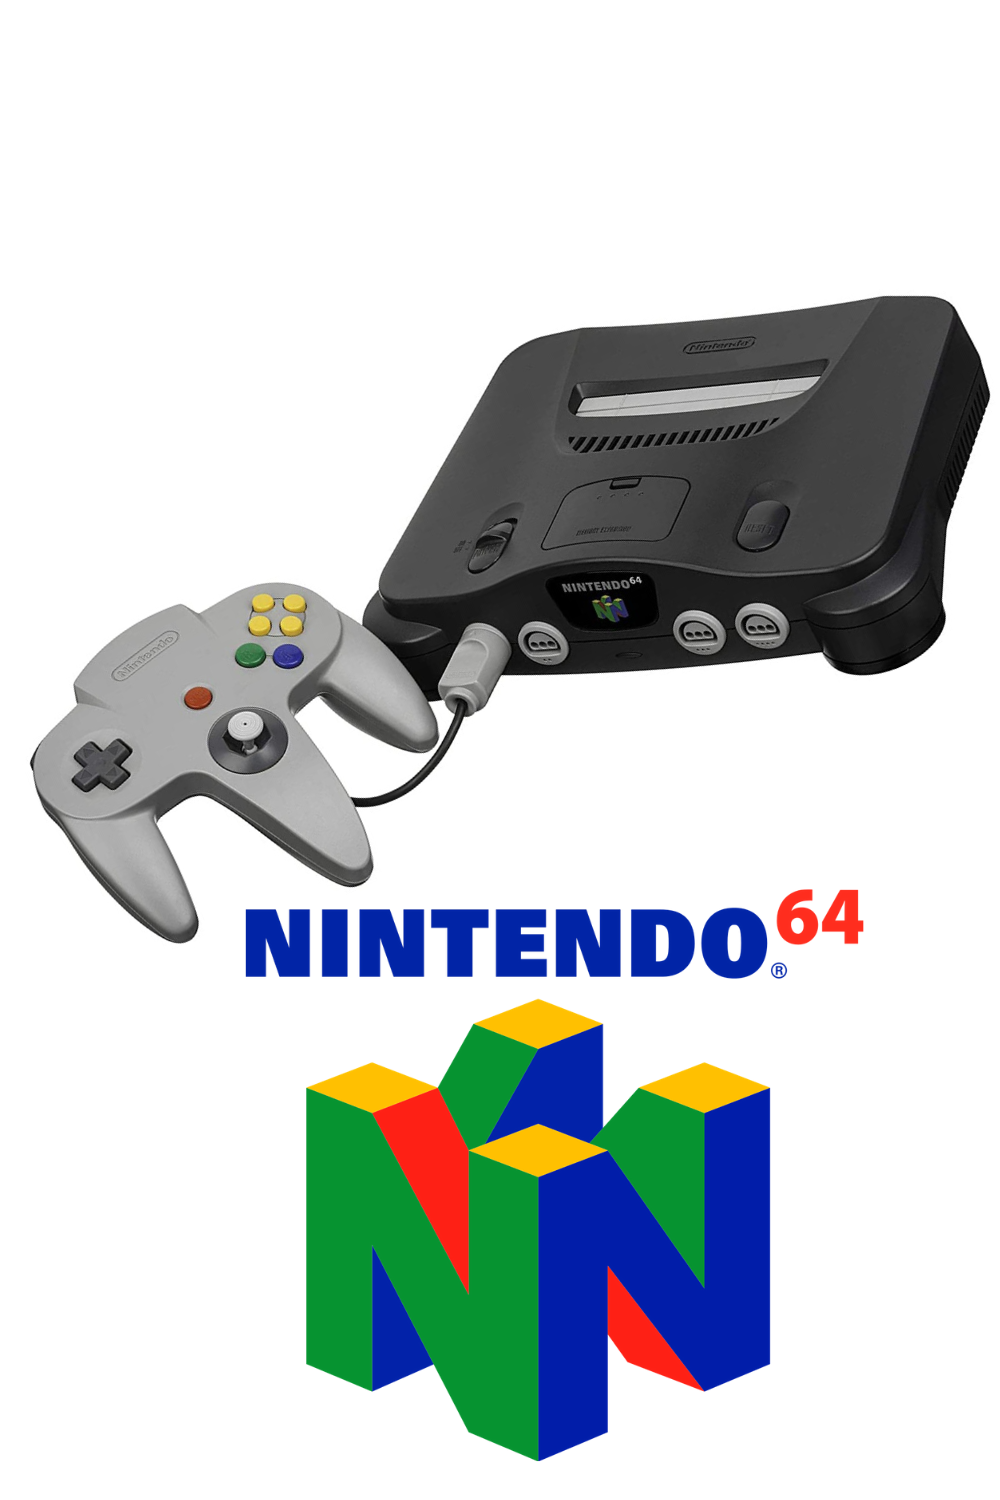 Nintendo 64 In 2020 Video Game Systems Nintendo 64 Video Game Console